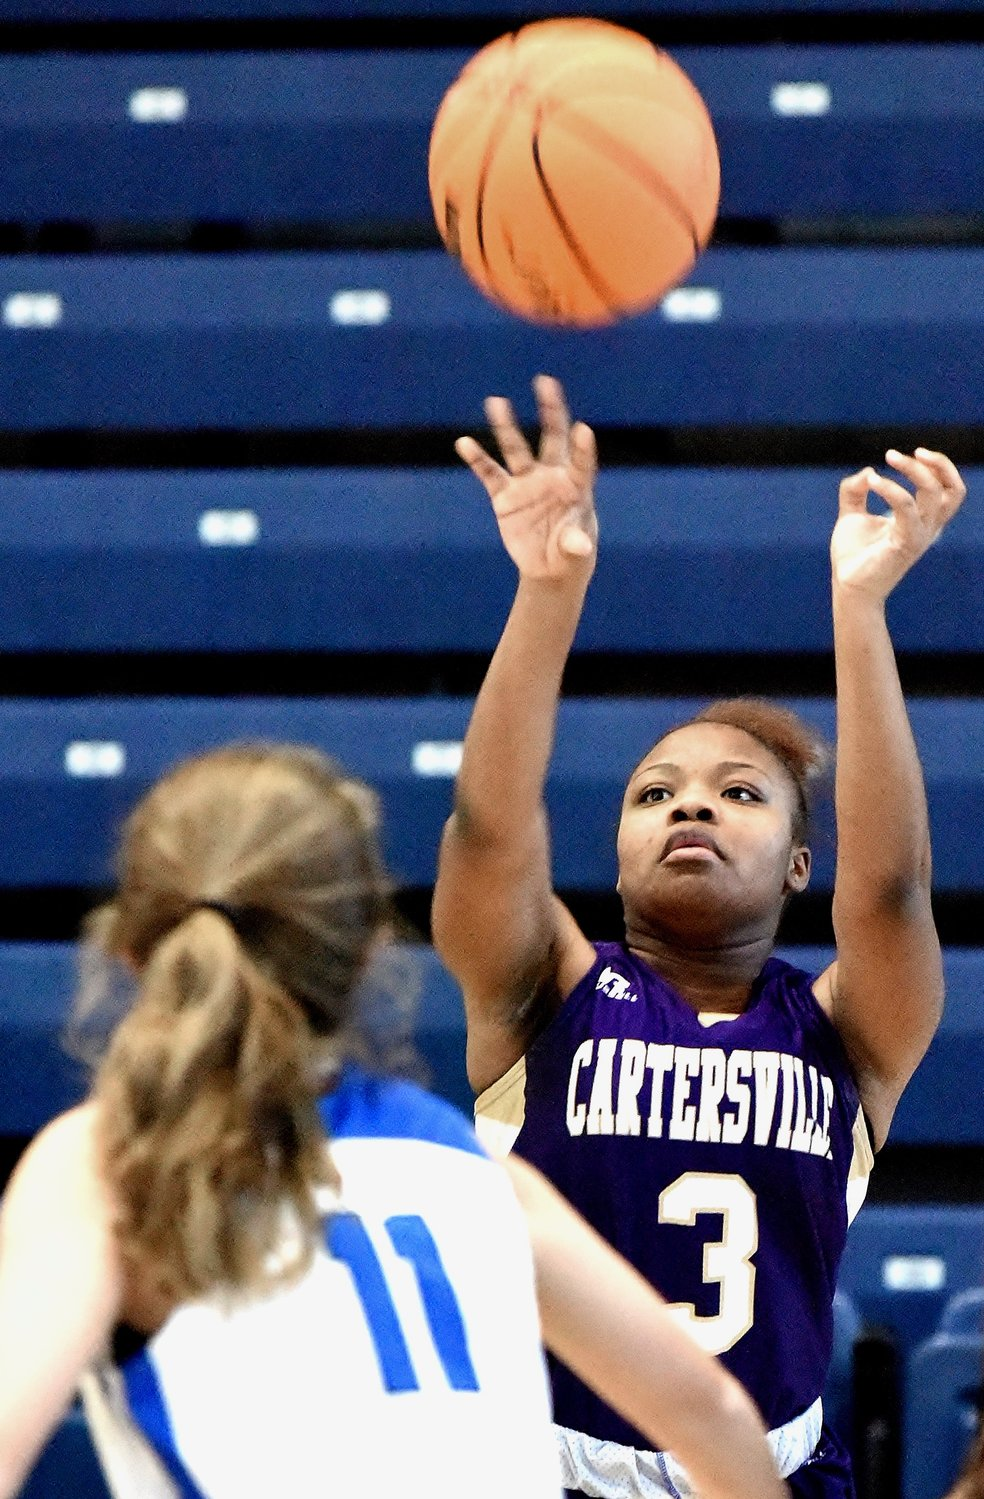 Lady Canes defeat Model with fourth-quarter run